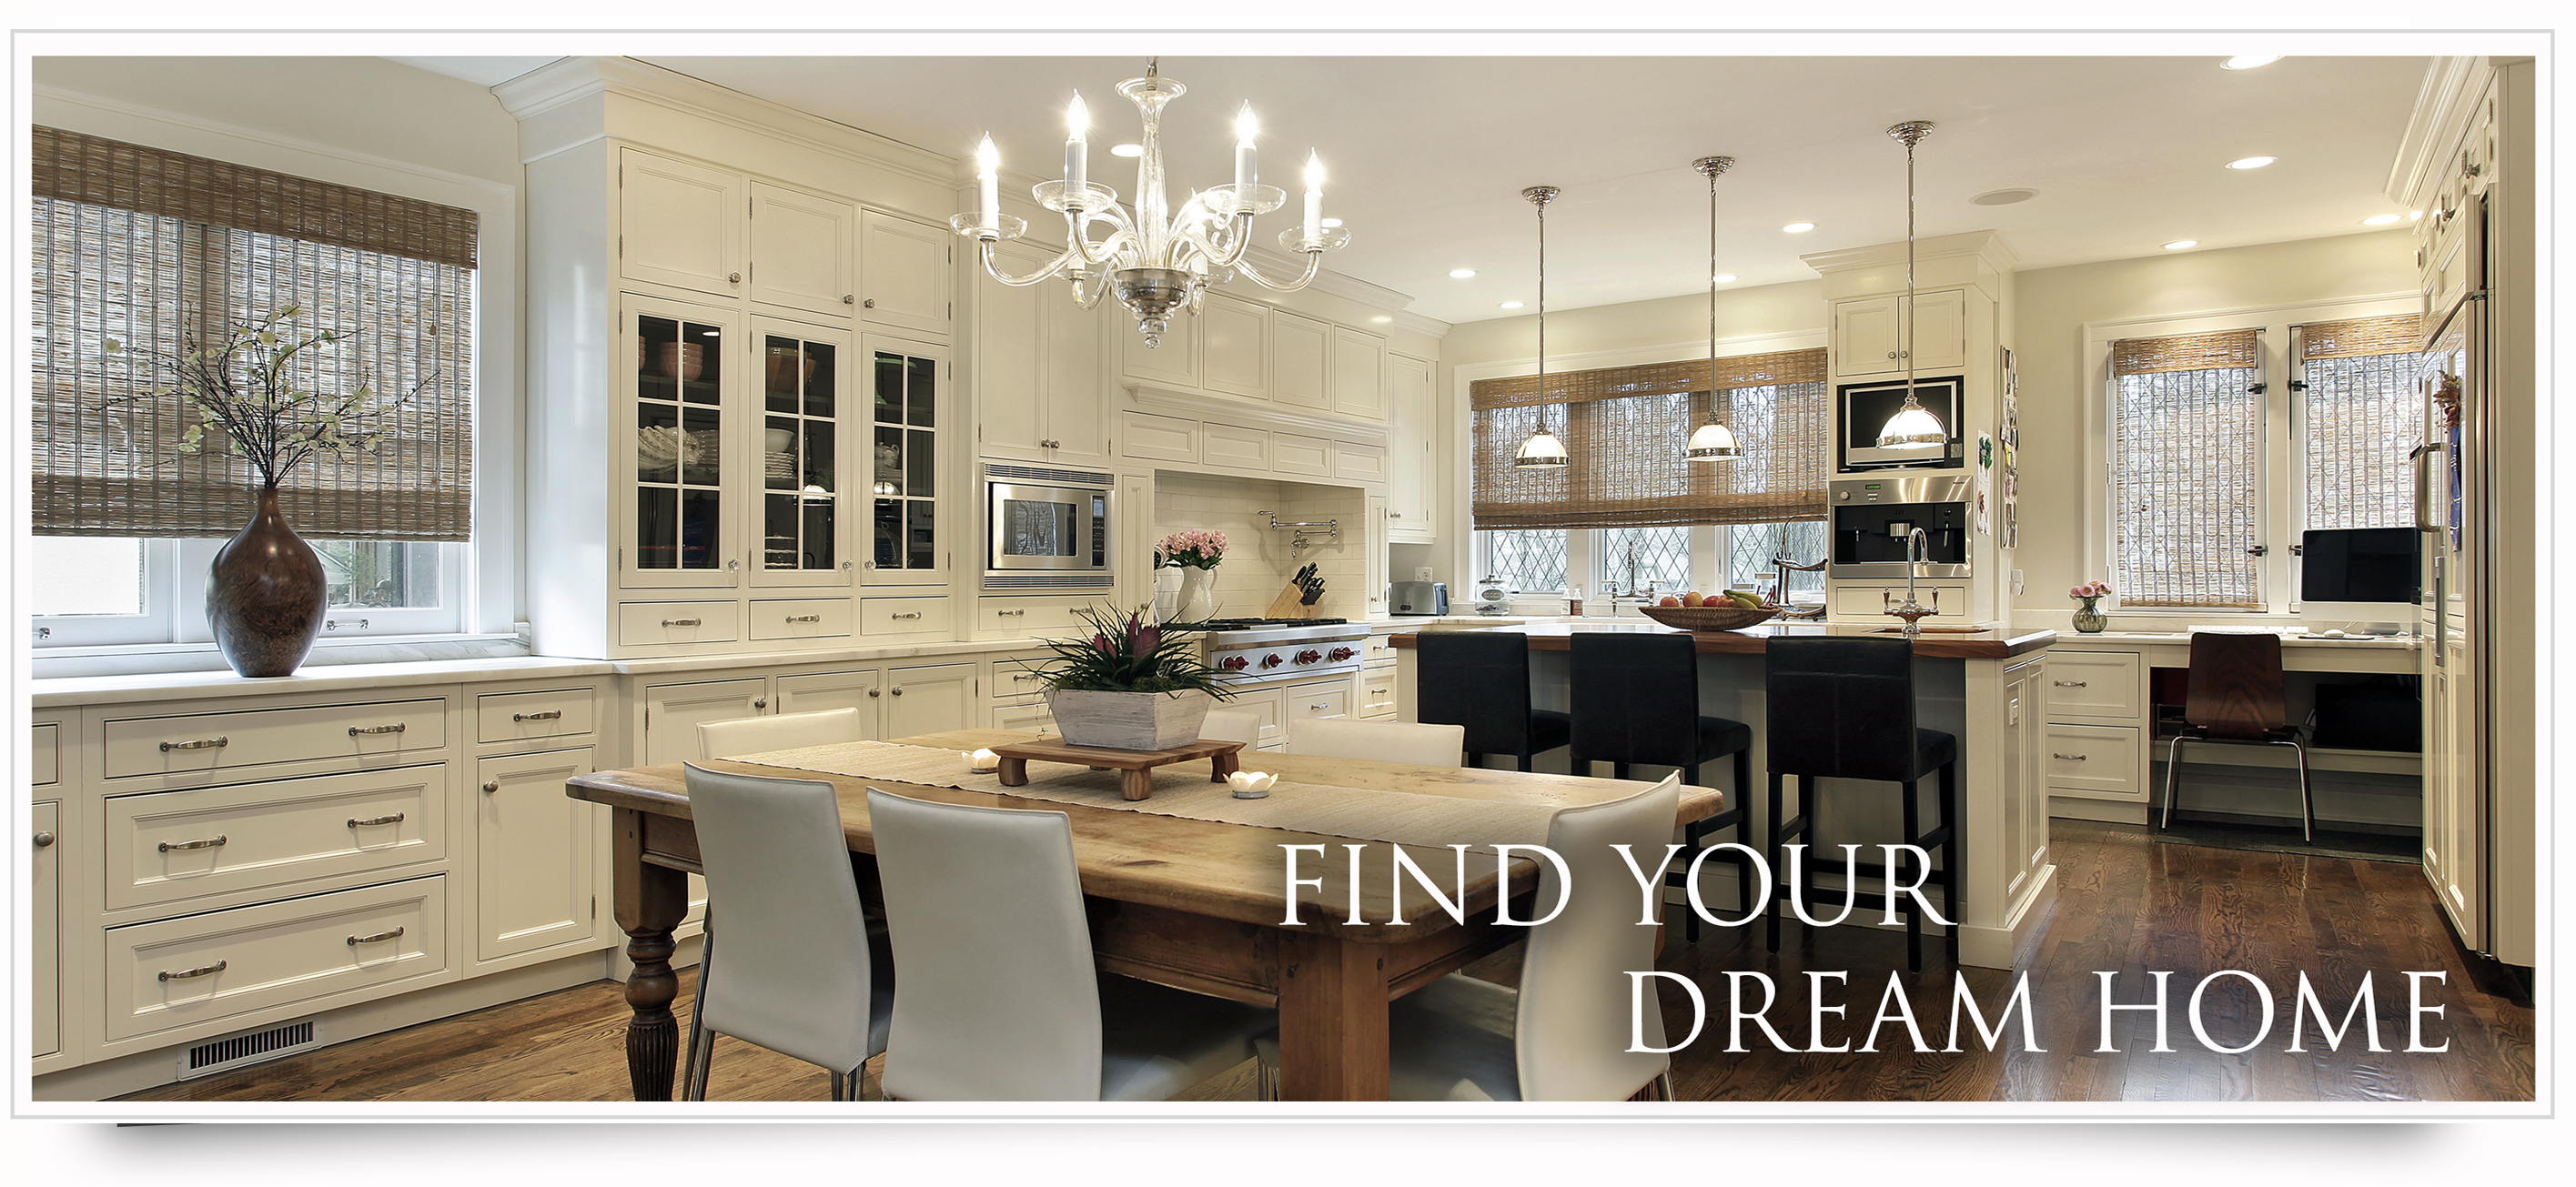 Find Your Dream Home jeananne sells homes